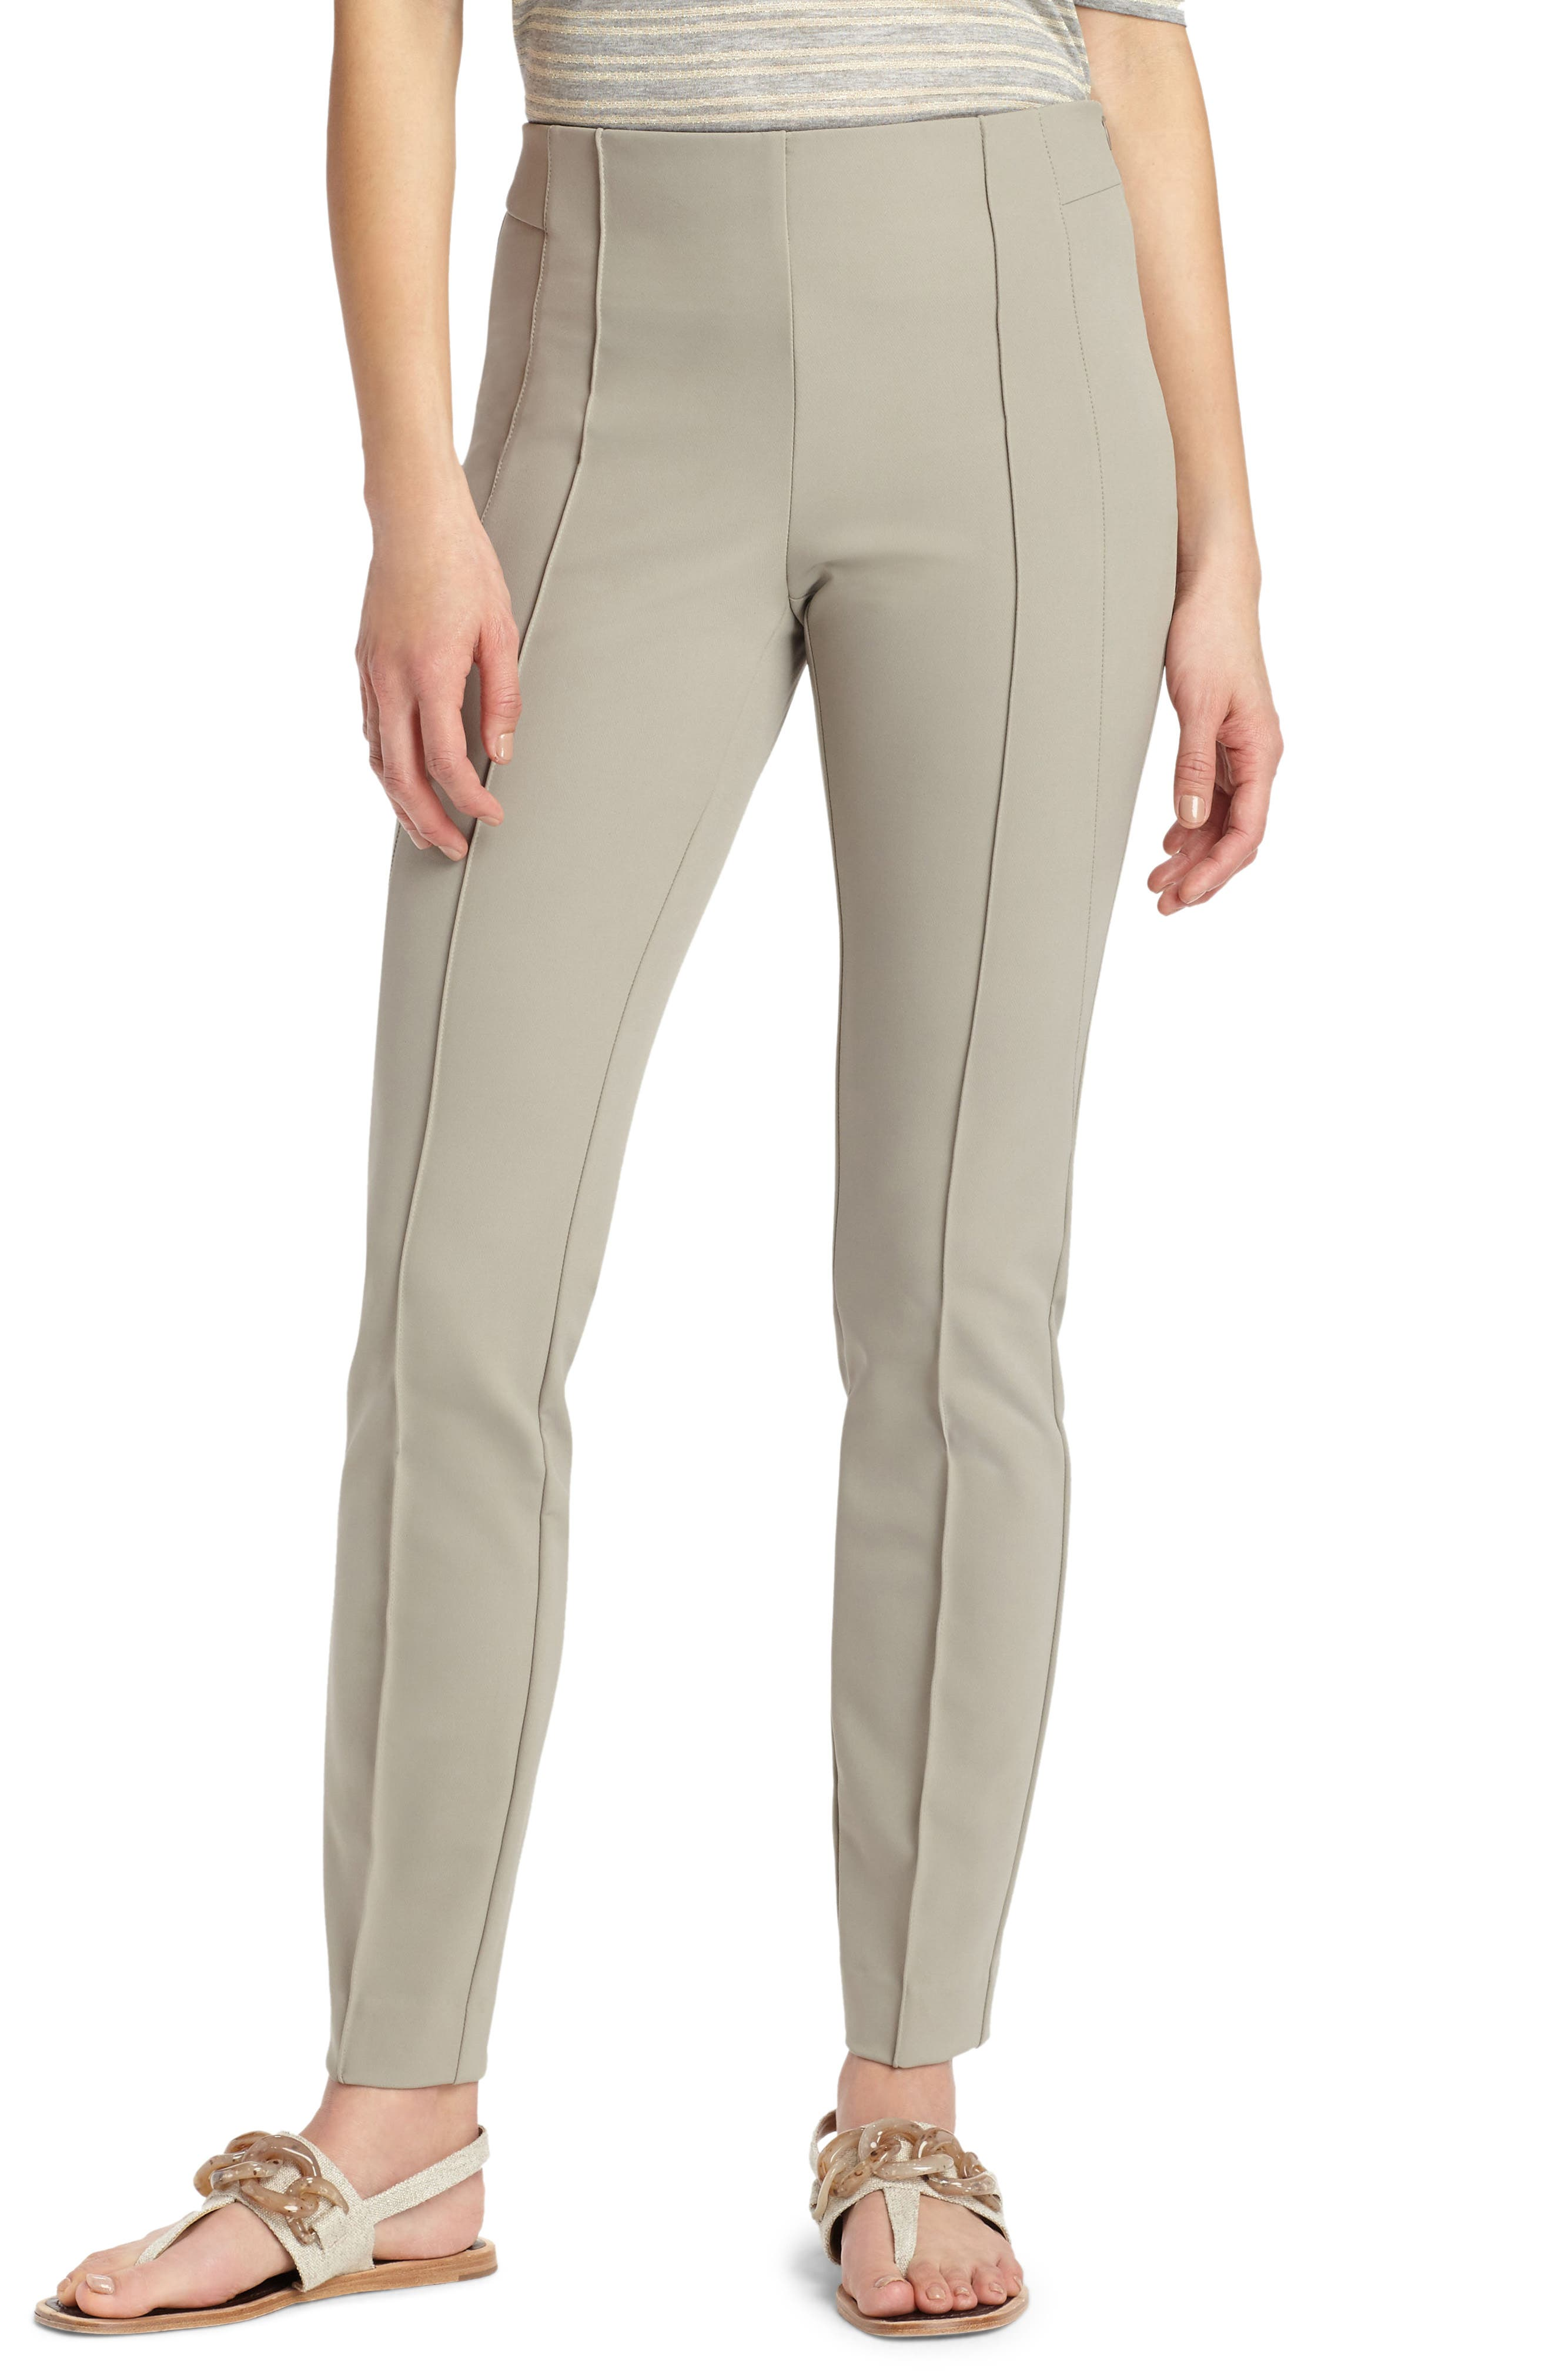 LAFAYETTE 148 NEW YORK 'Gramercy' Acclaimed Stretch Pants, Main, color, PARTRIDGE